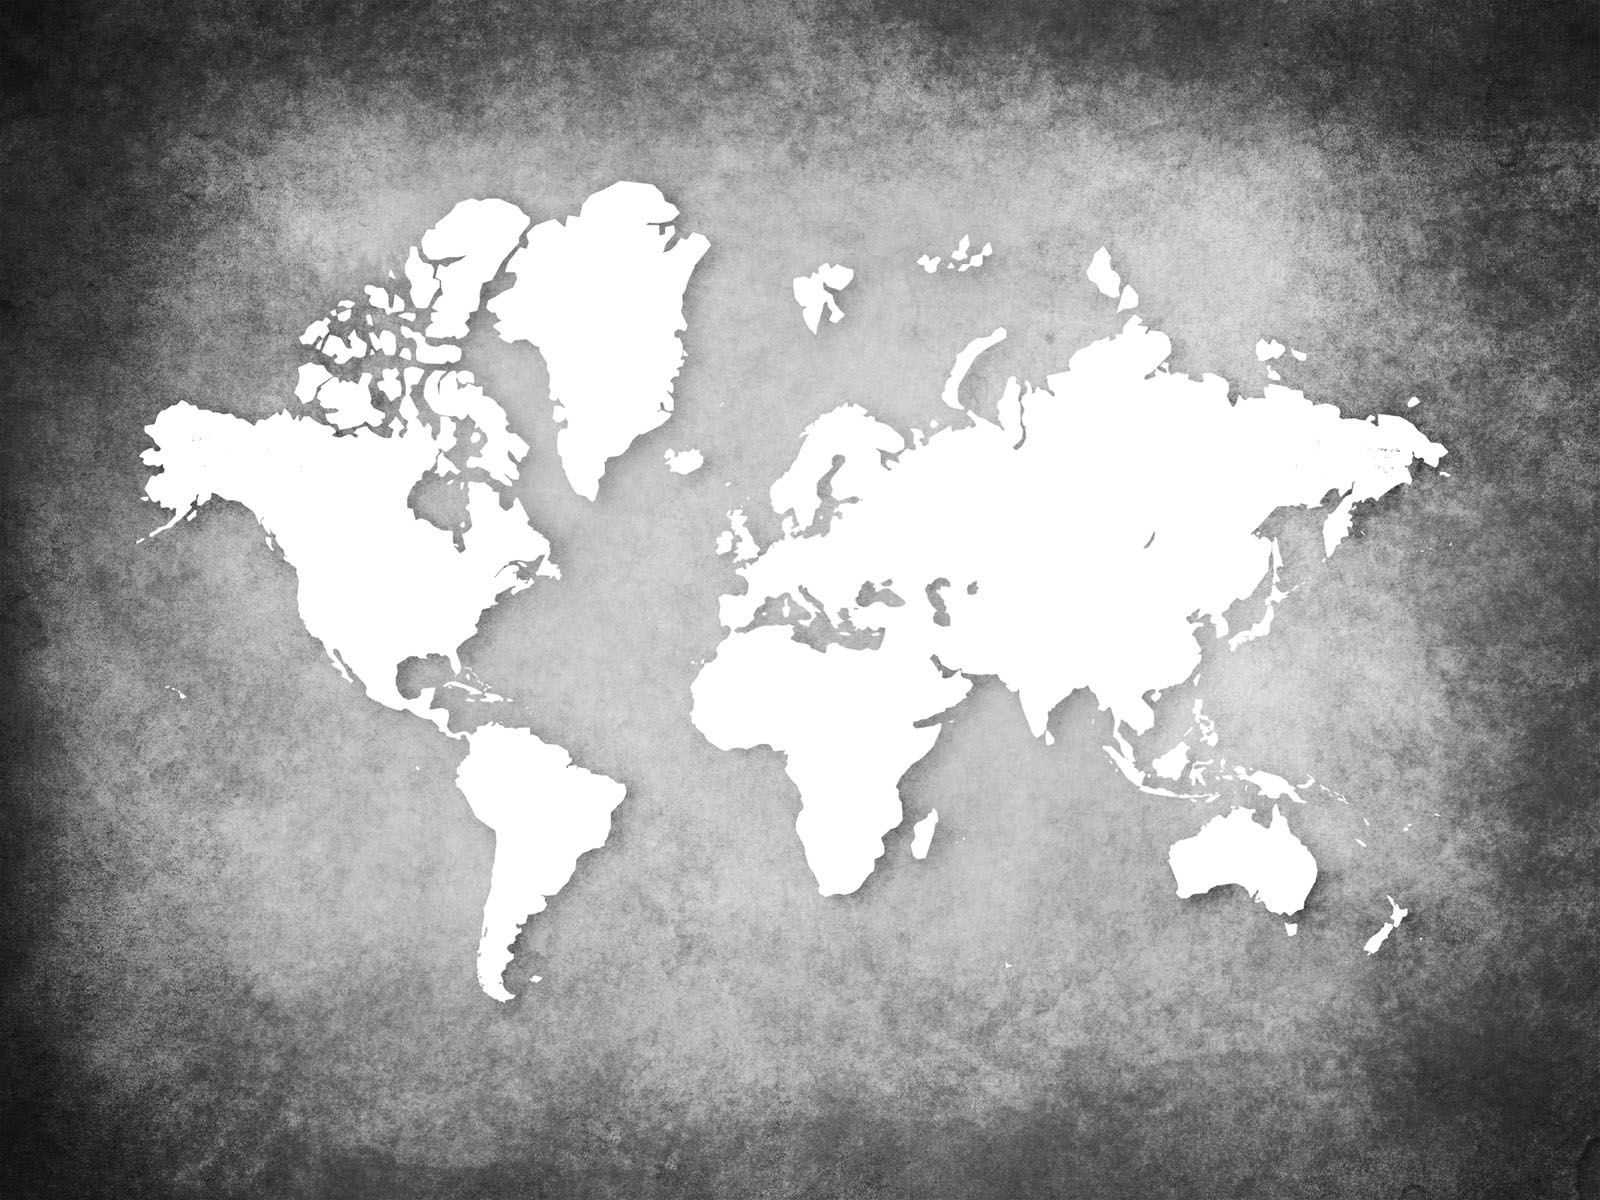 Download world map wallpaper black and white gallery world map wallpaper black and white gumiabroncs Choice Image